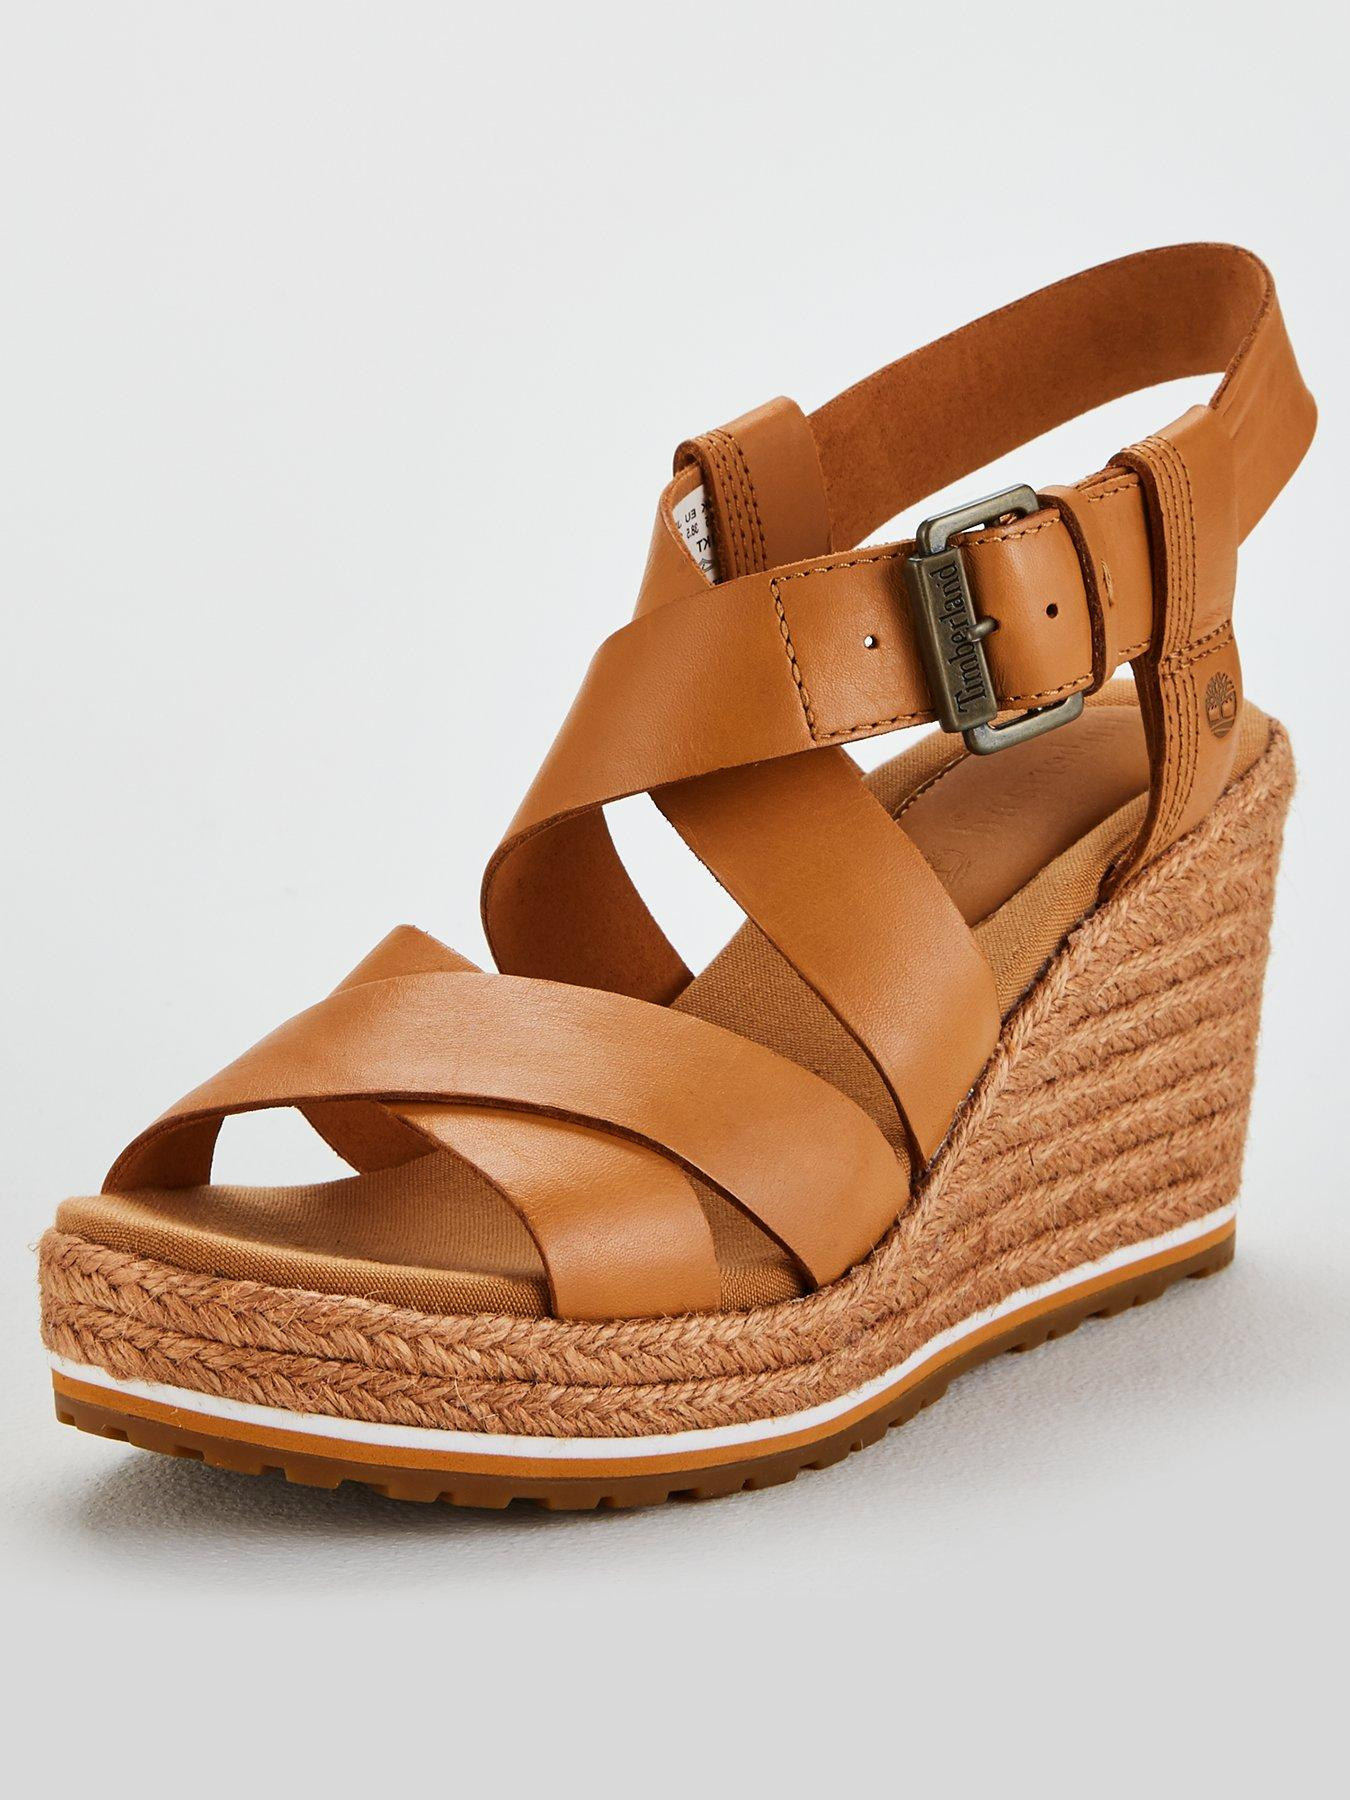 Timberland Nice Coast Ankle Strap Wedge Sandals Beige